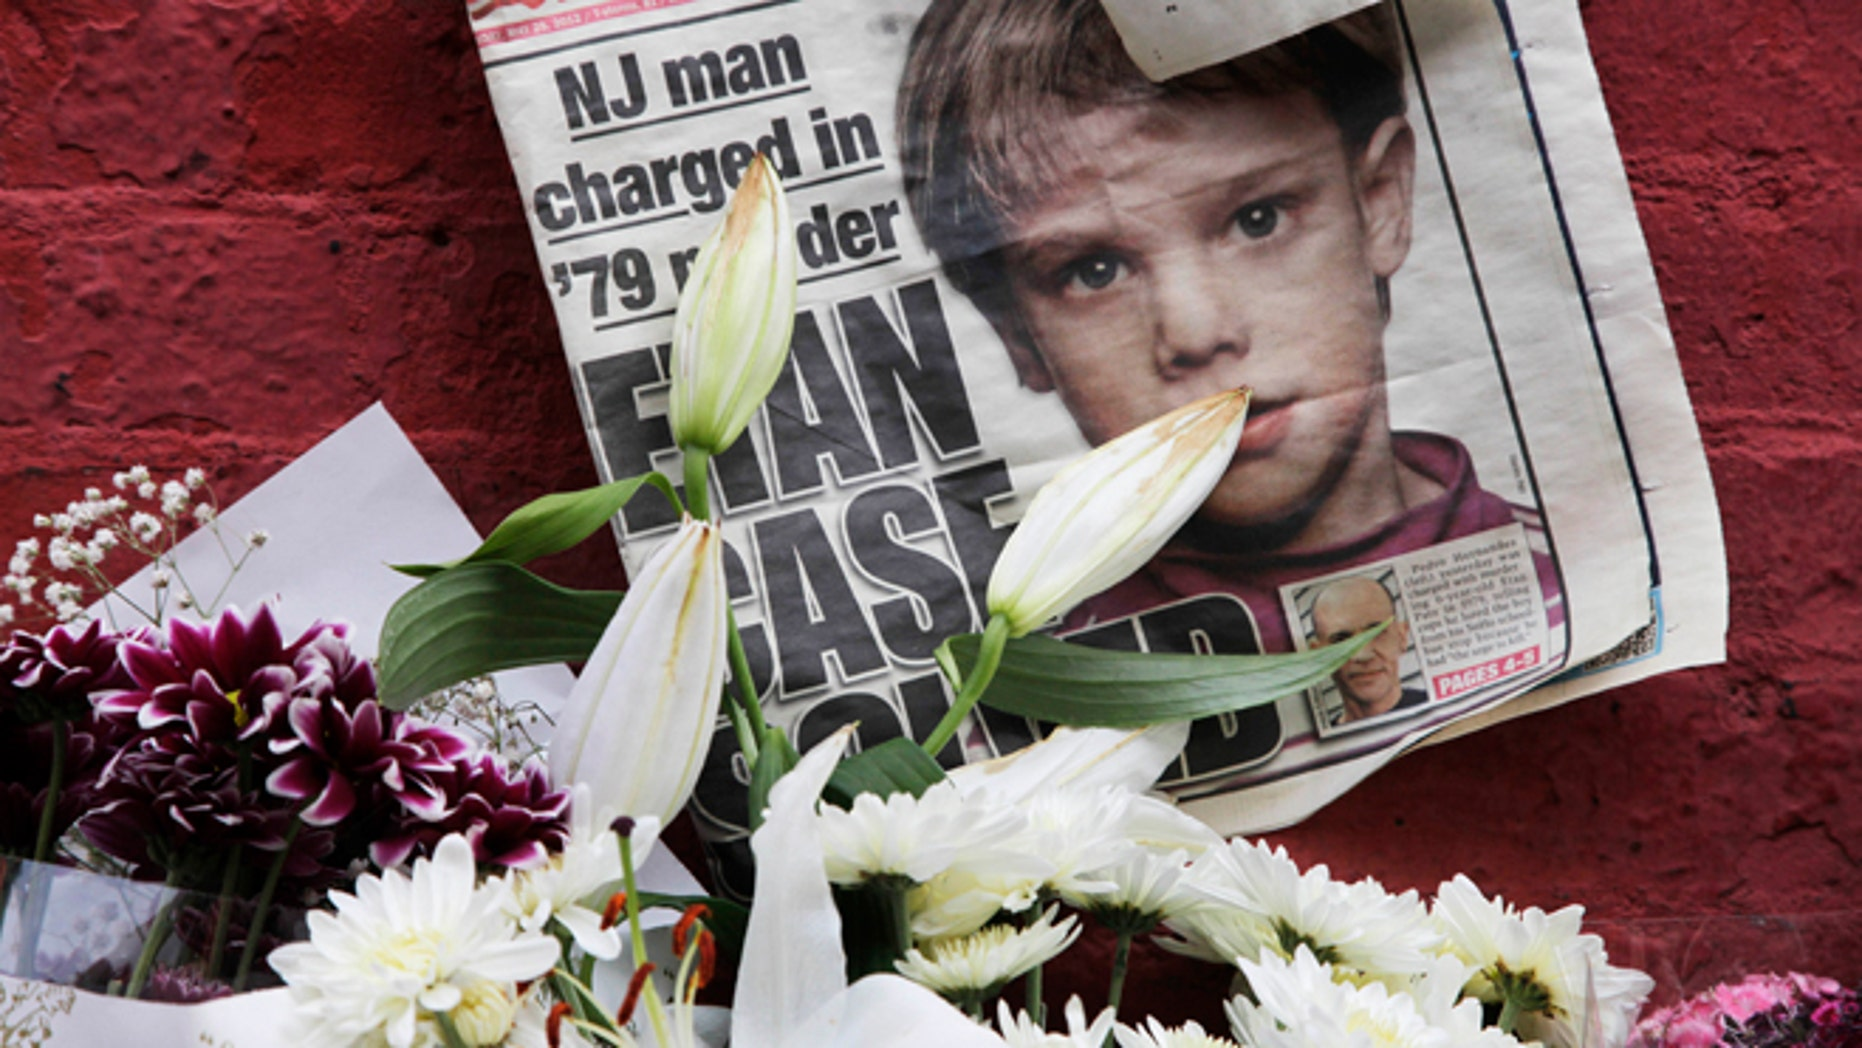 FILE - This May 28, 2012, file photo shows a newspaper with a photograph of Etan Patz that is part of a makeshift memorial in the SoHo neighborhood of New York. Jury selection is set to start Monday, Jan. 5, 2015, in Hernandezâs murder trial. As the murder case surrounding Patz' notorious 1979 disappearance heads to trial, missing-childrenâs advocates see it as proof that such cases still can be pursued after decades. (AP Photo/Mark Lennihan, File)